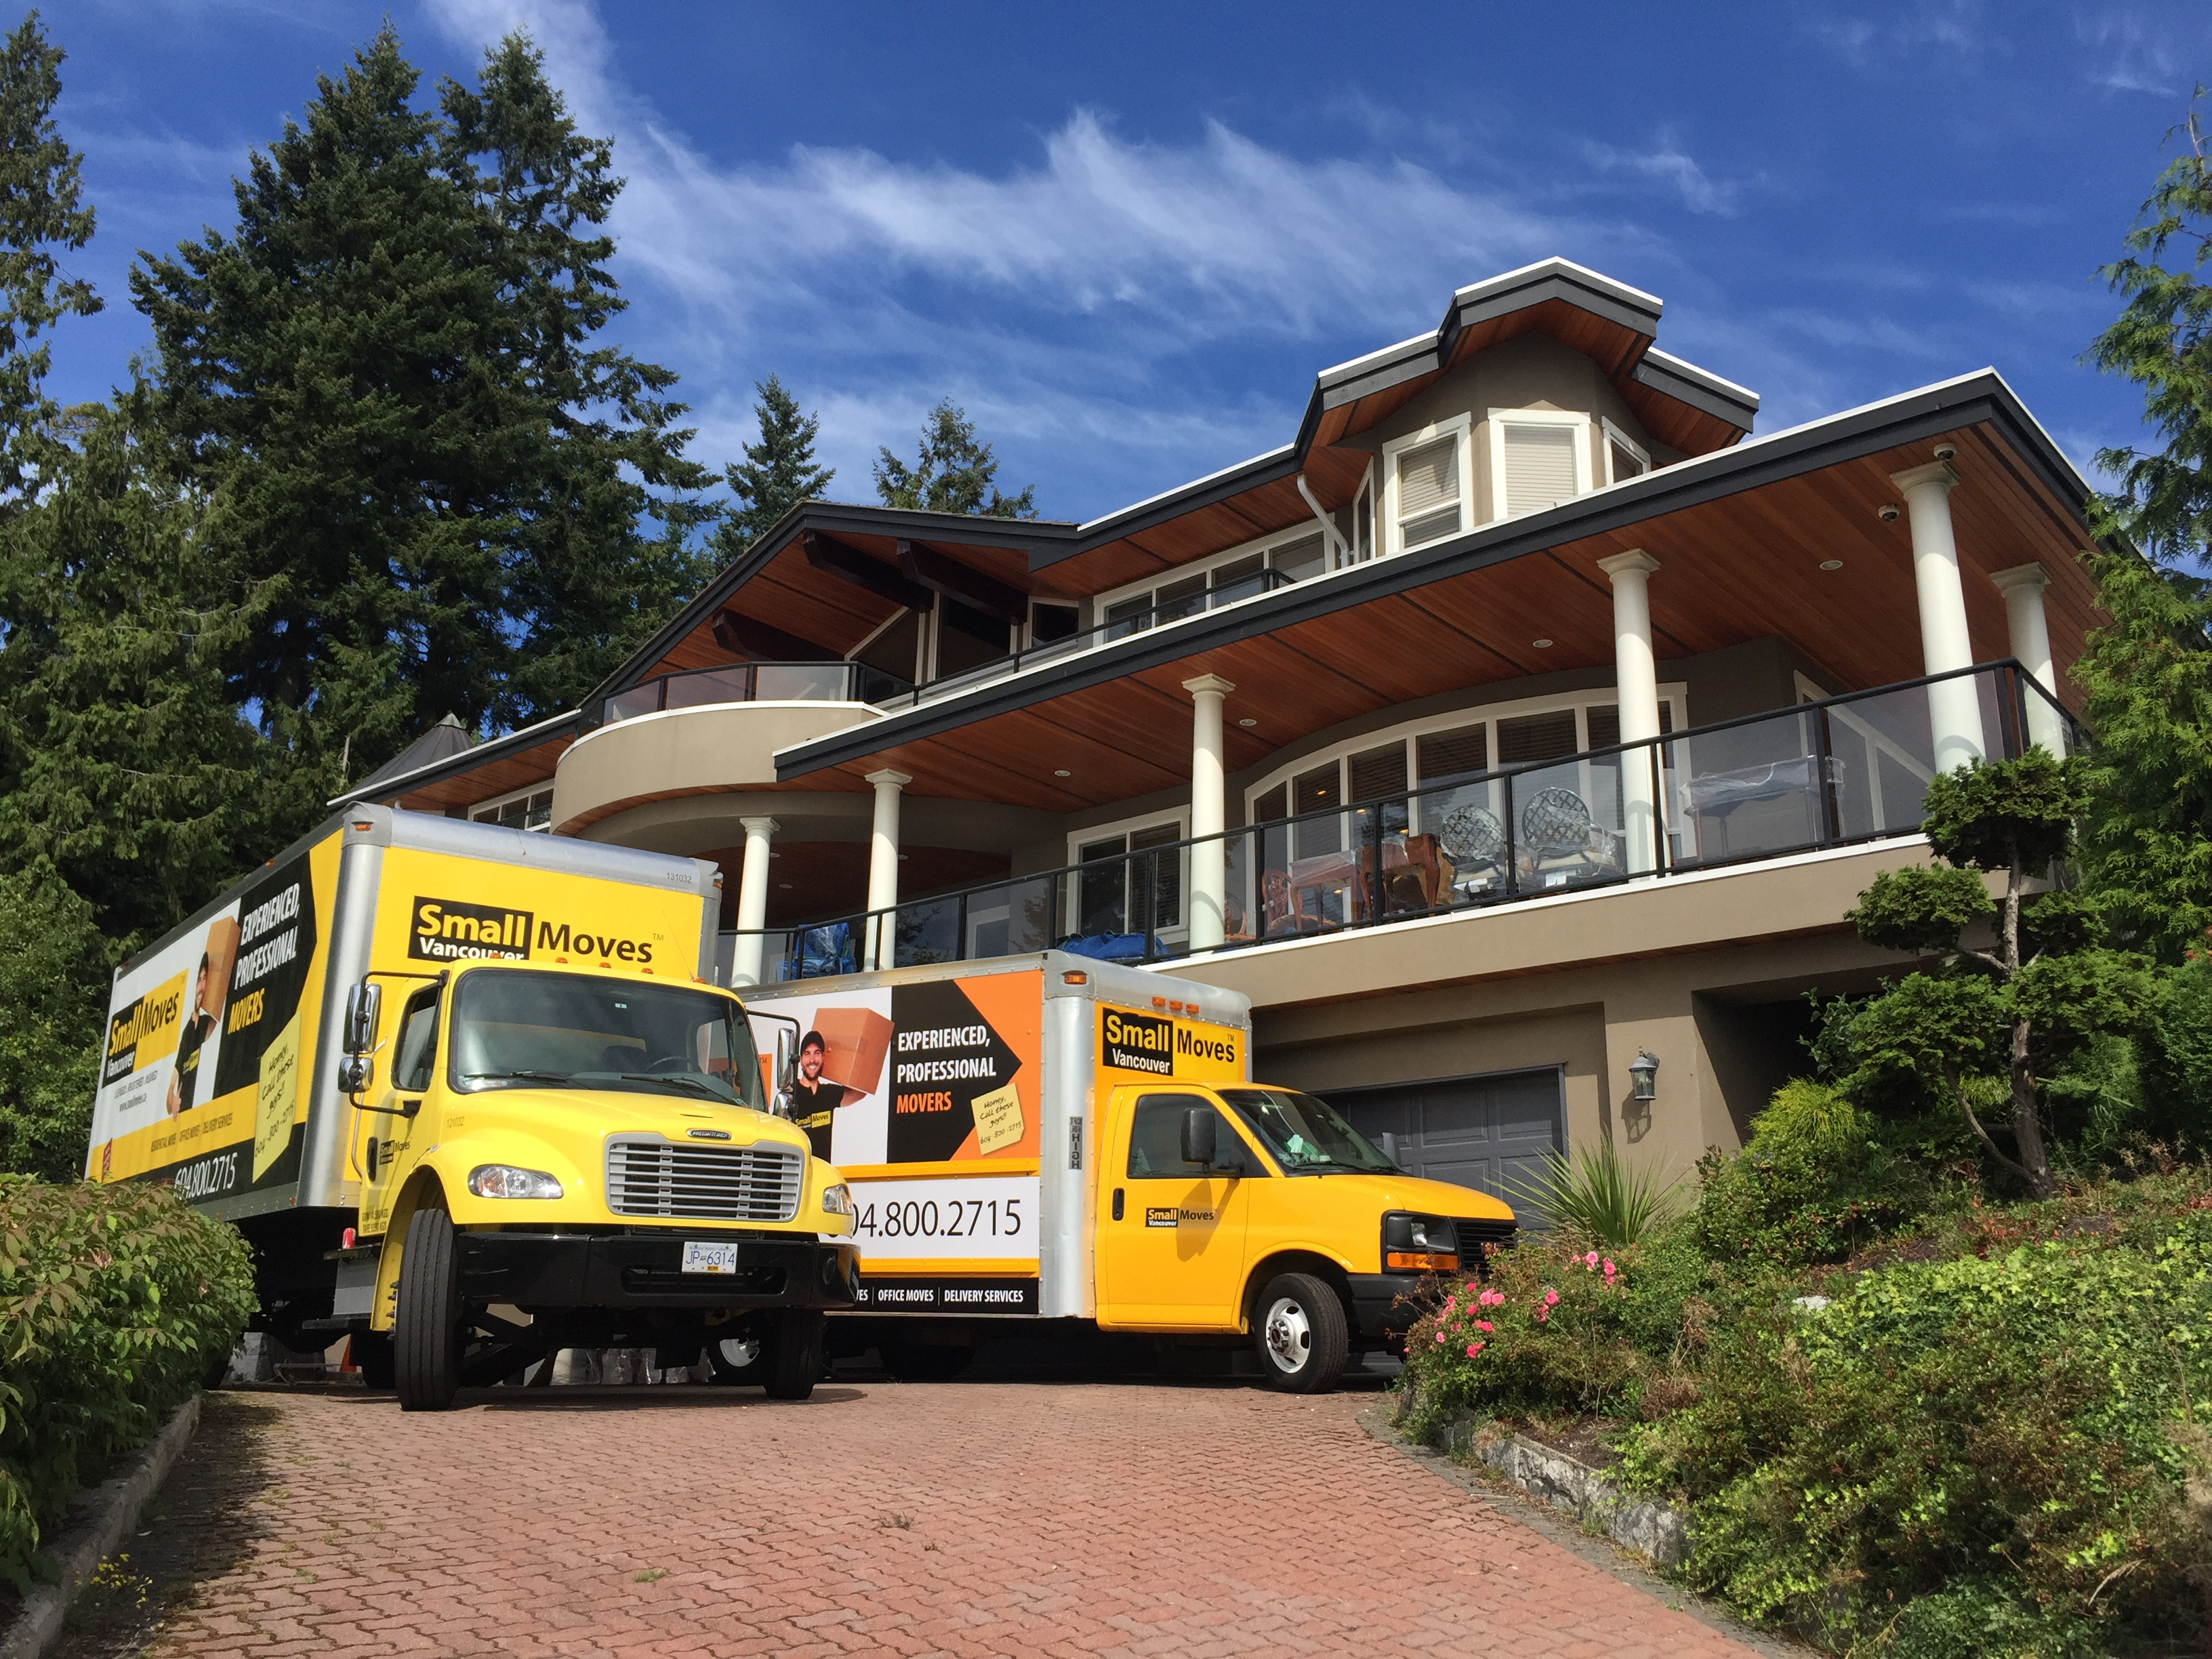 2 moving trucks - West Vancouver, BC - movers